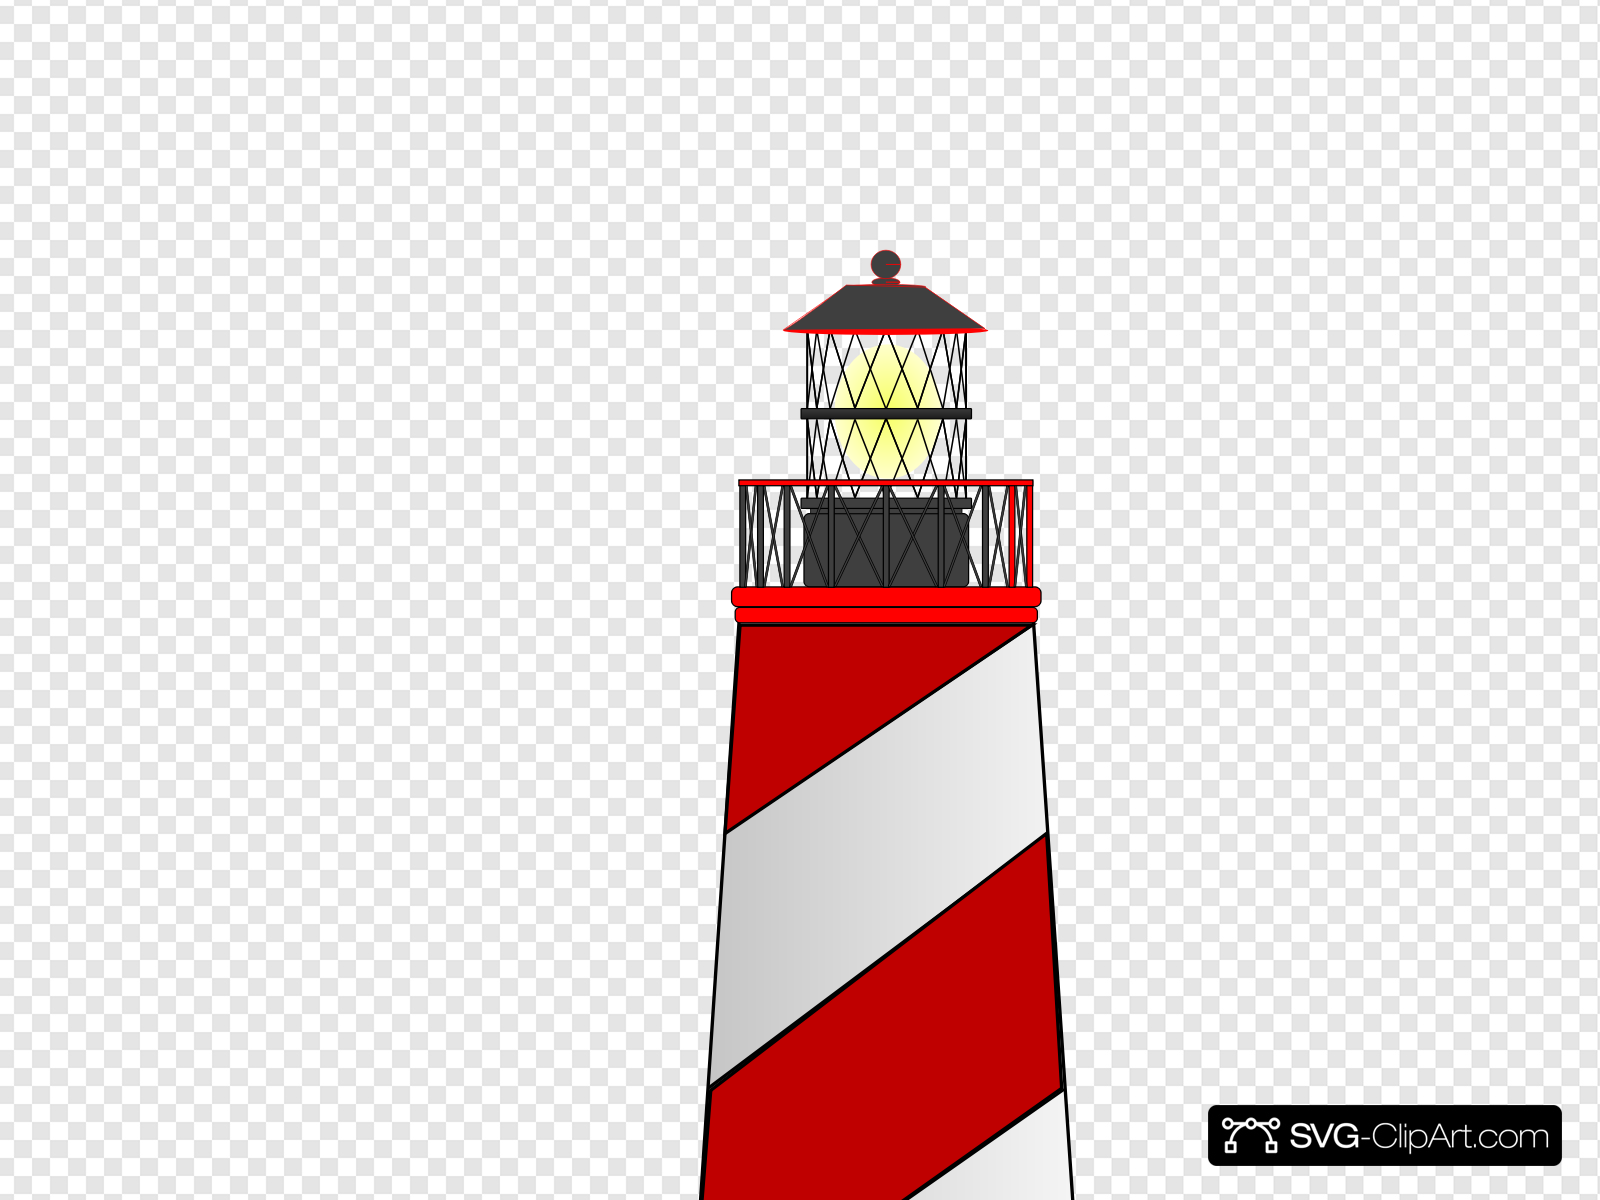 Lighthouse Clip art, Icon and SVG.